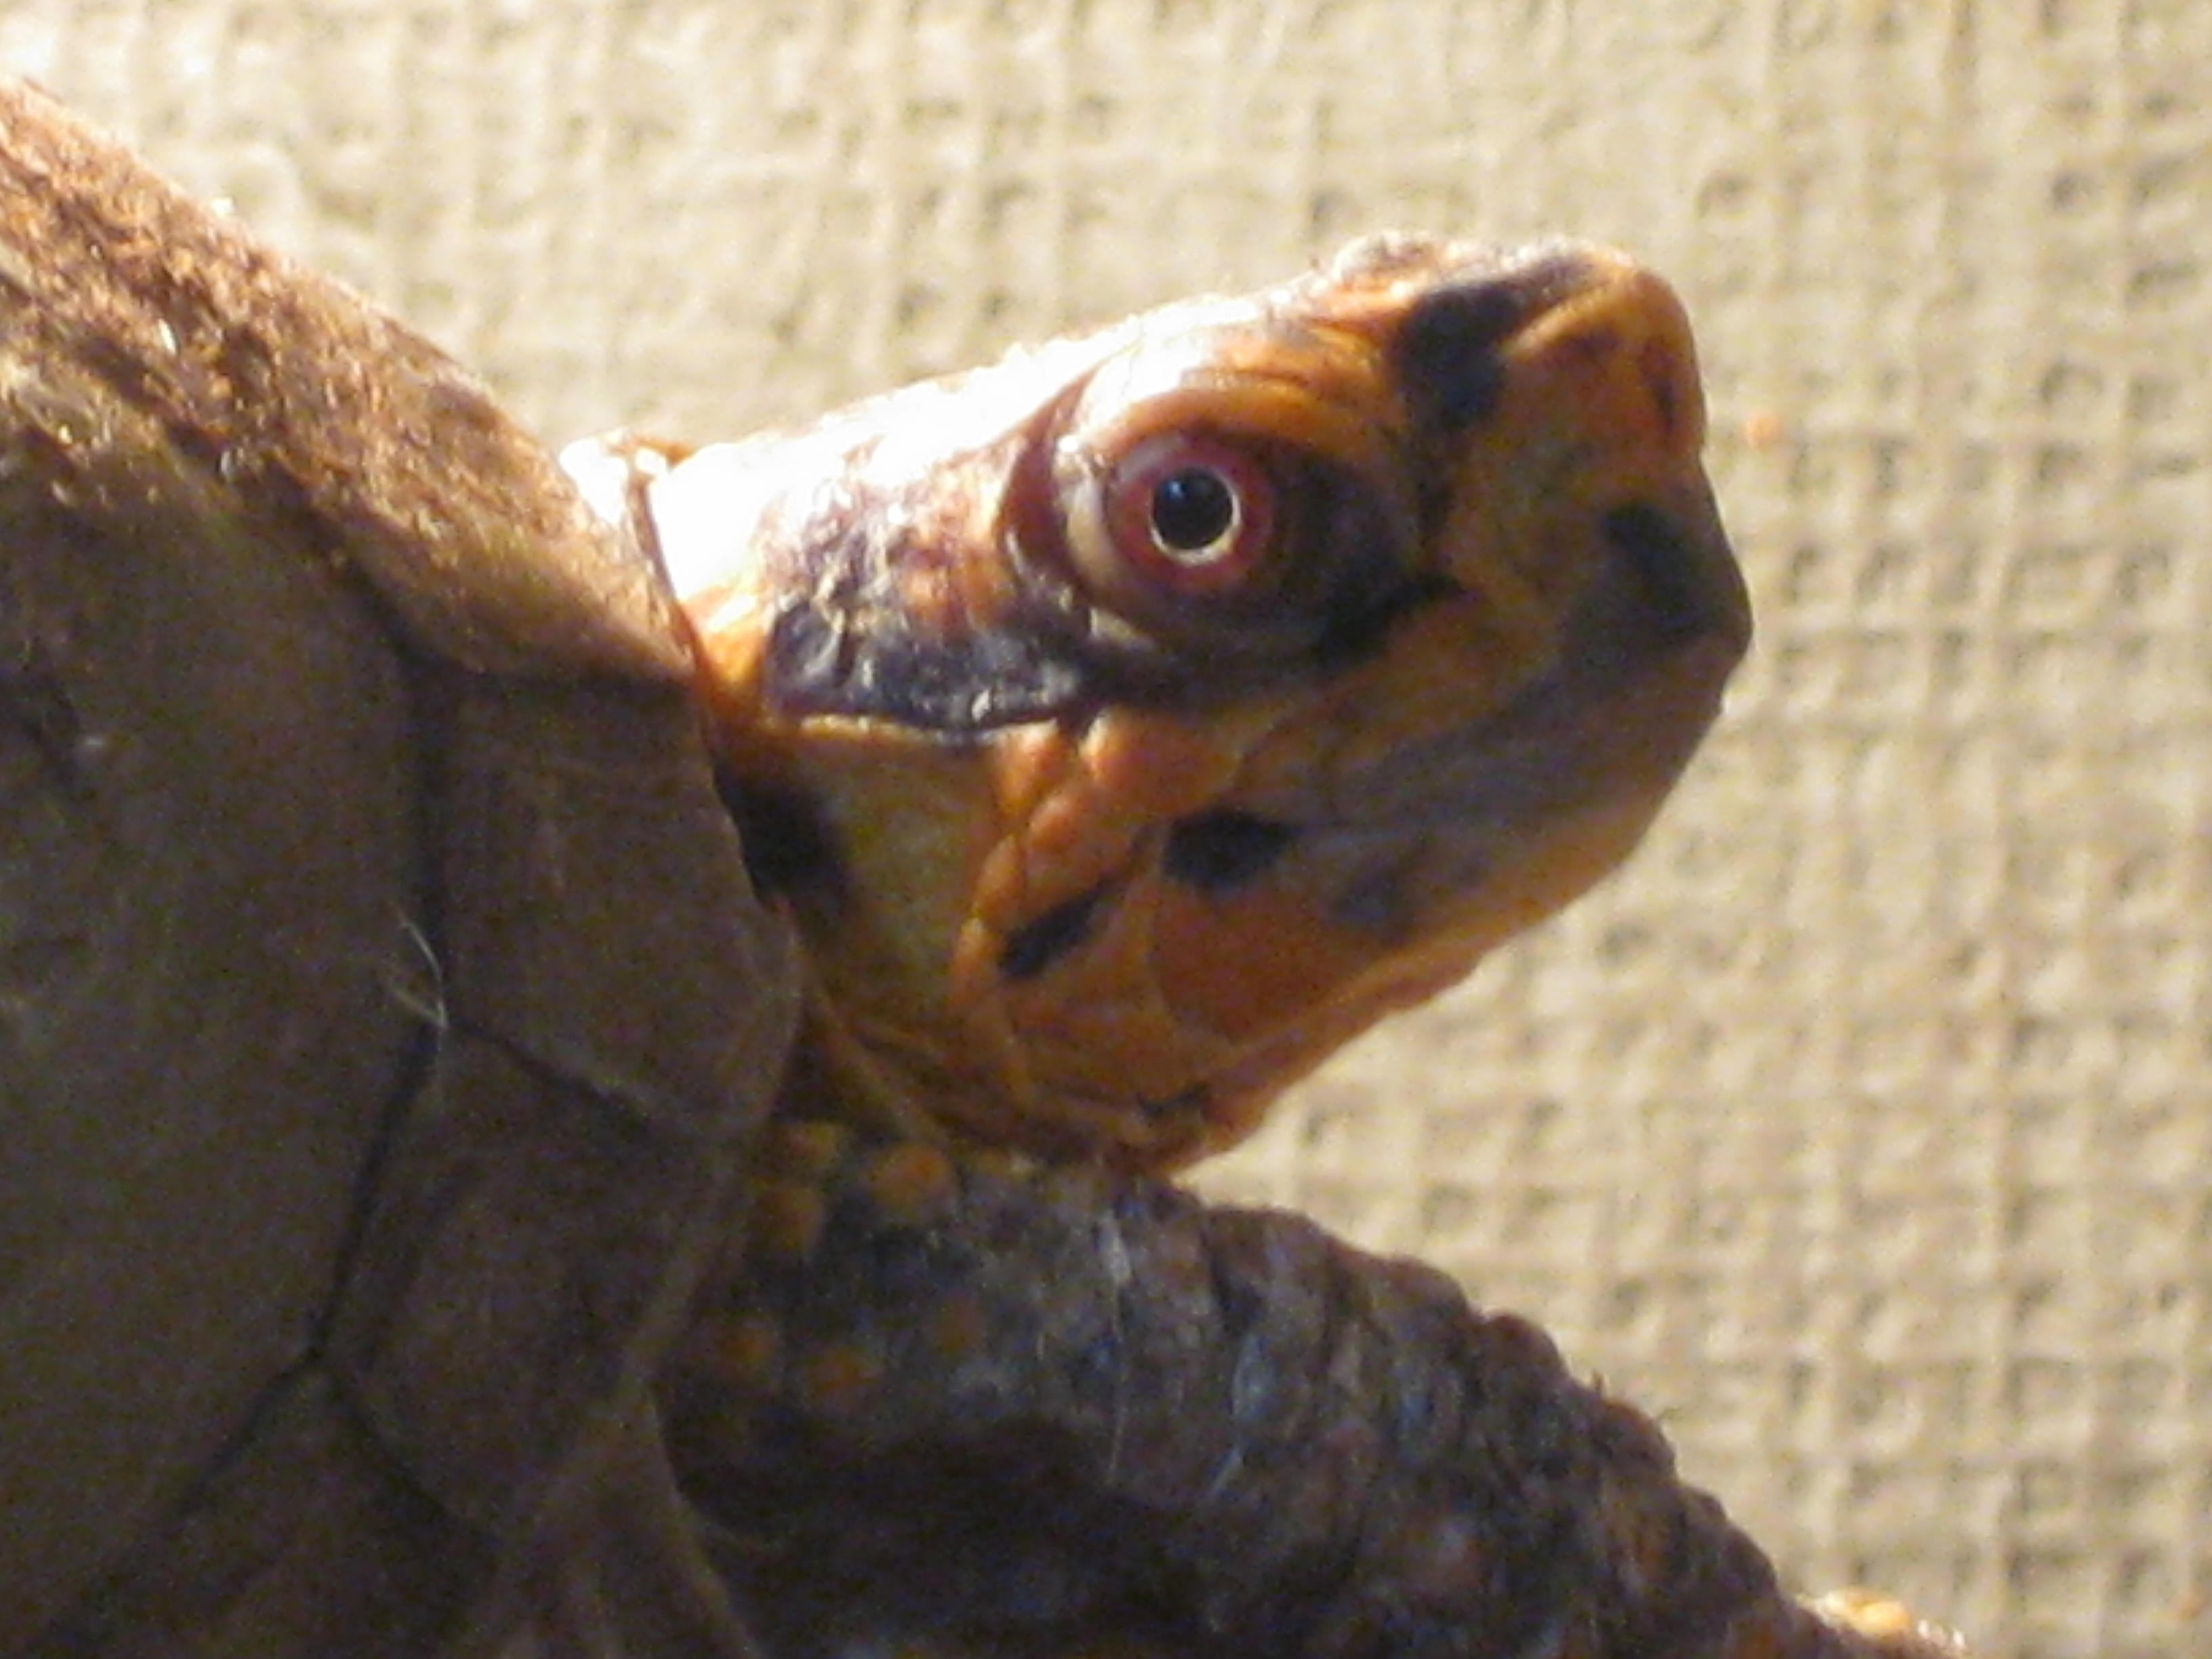 THE SHOW SO FAR Animals - Jonathan tortoise mind blowing 182 years old